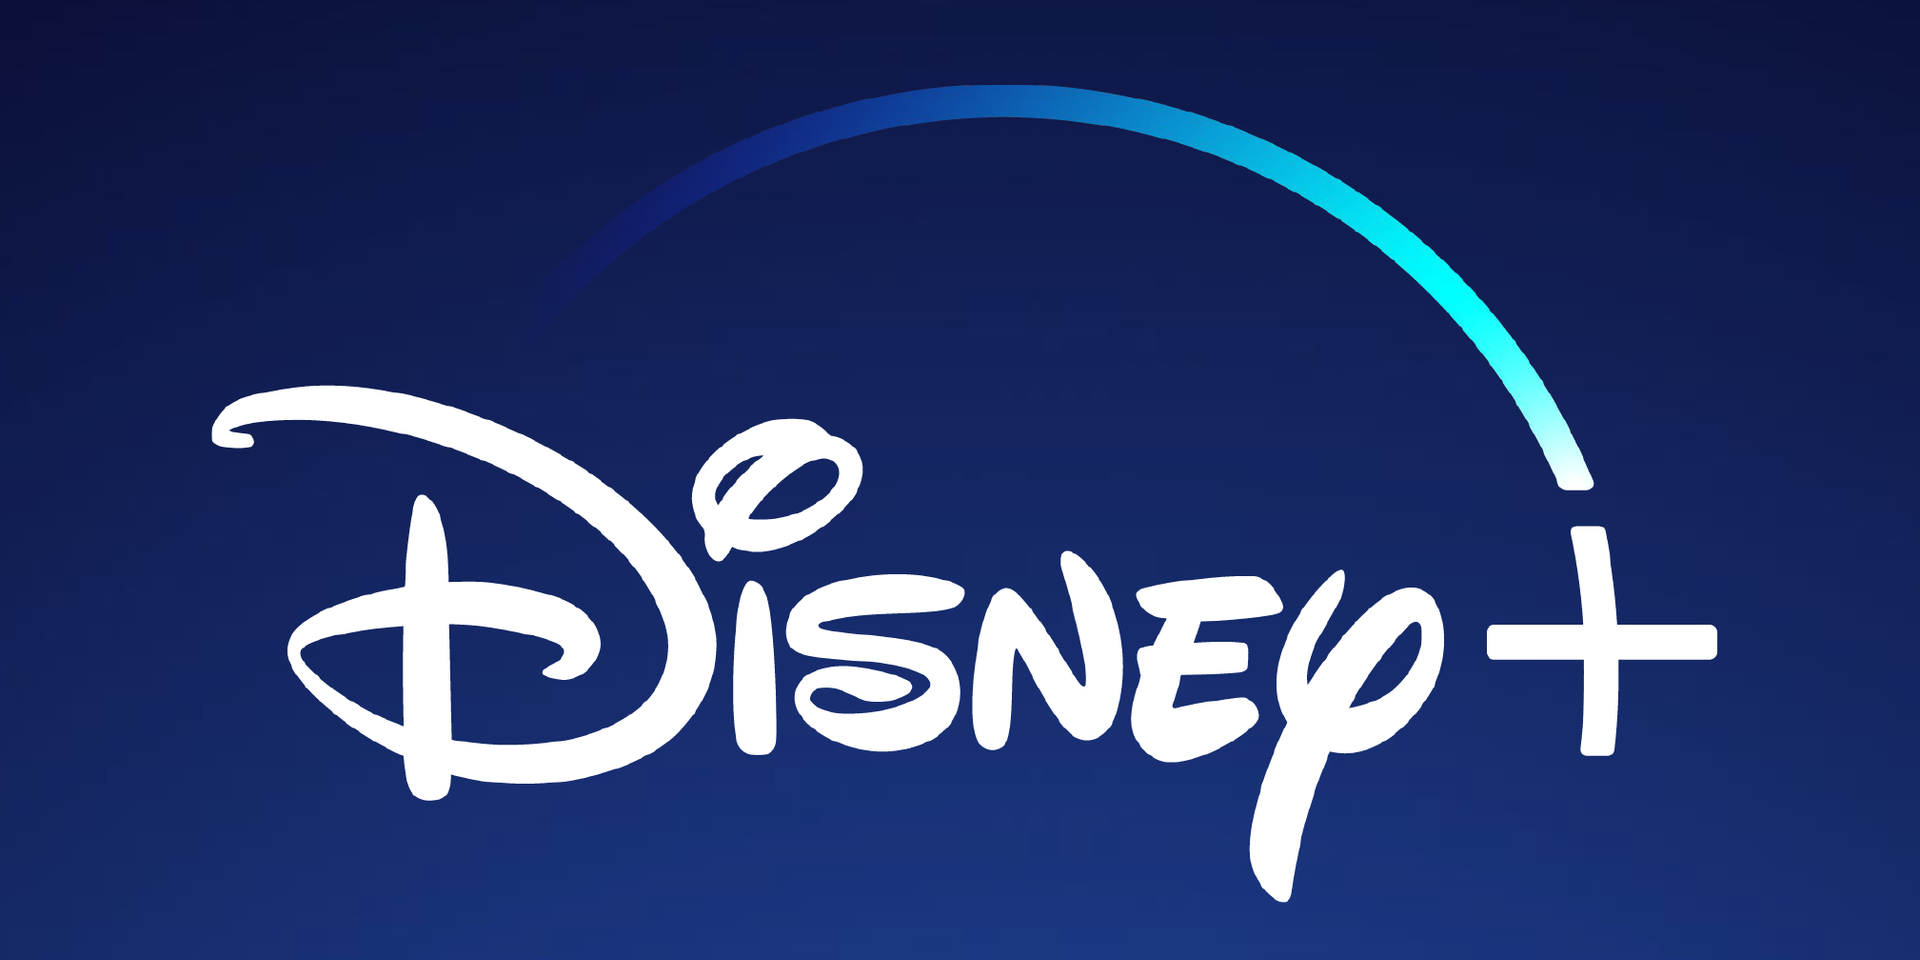 Disney+ is coming to Singapore in February 2021